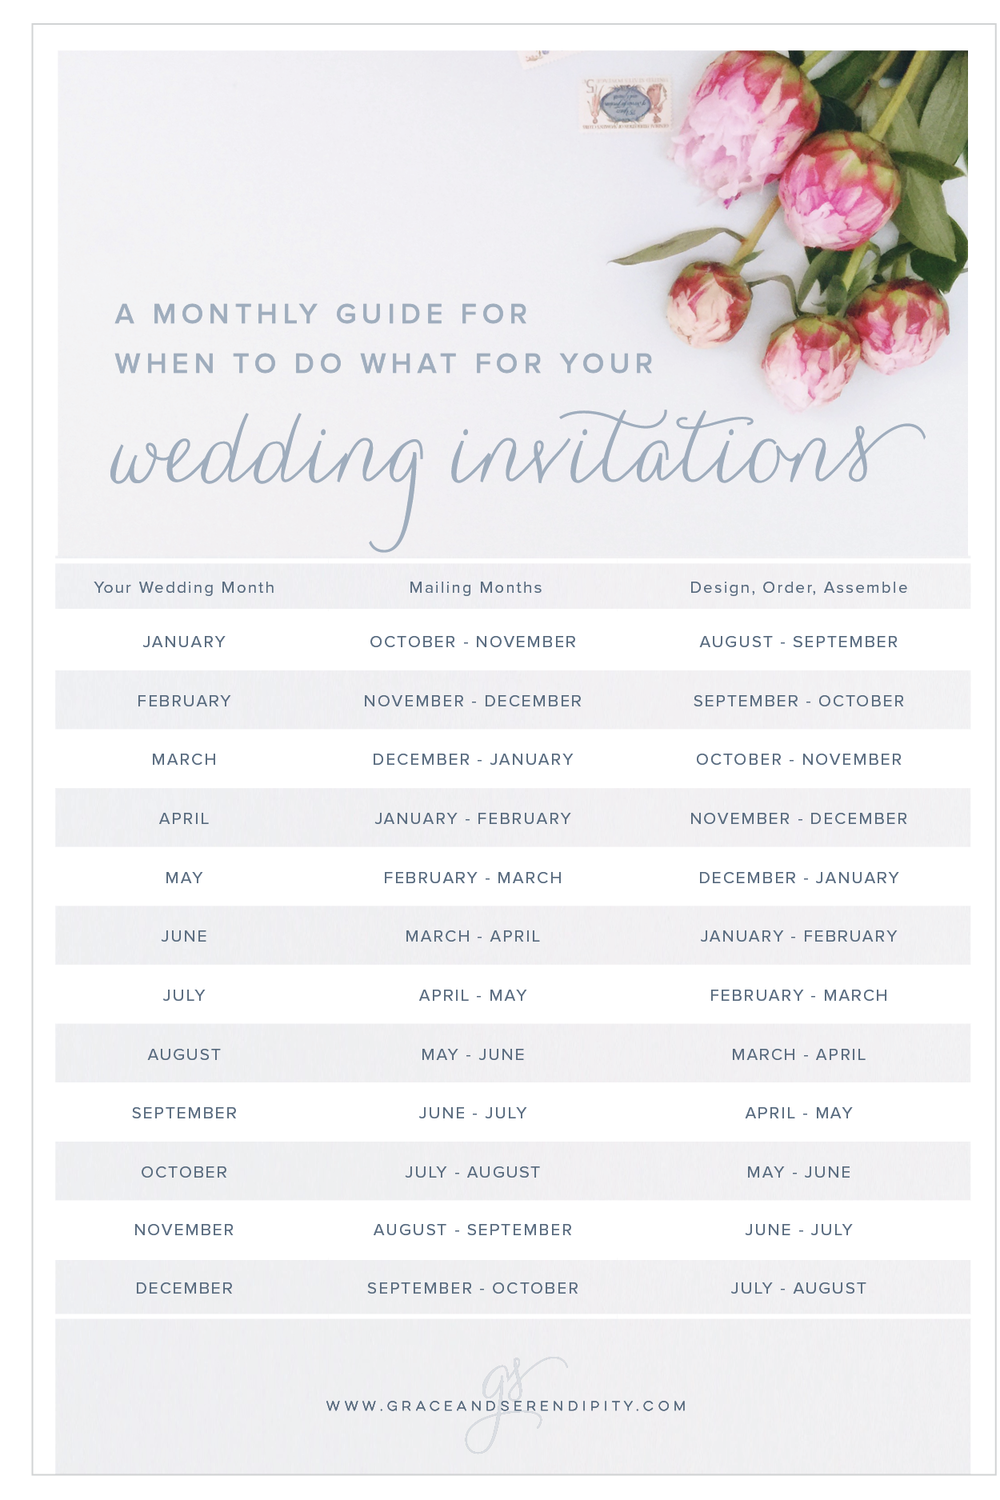 When to Mail Wedding Invitations by Grace and Serendipity